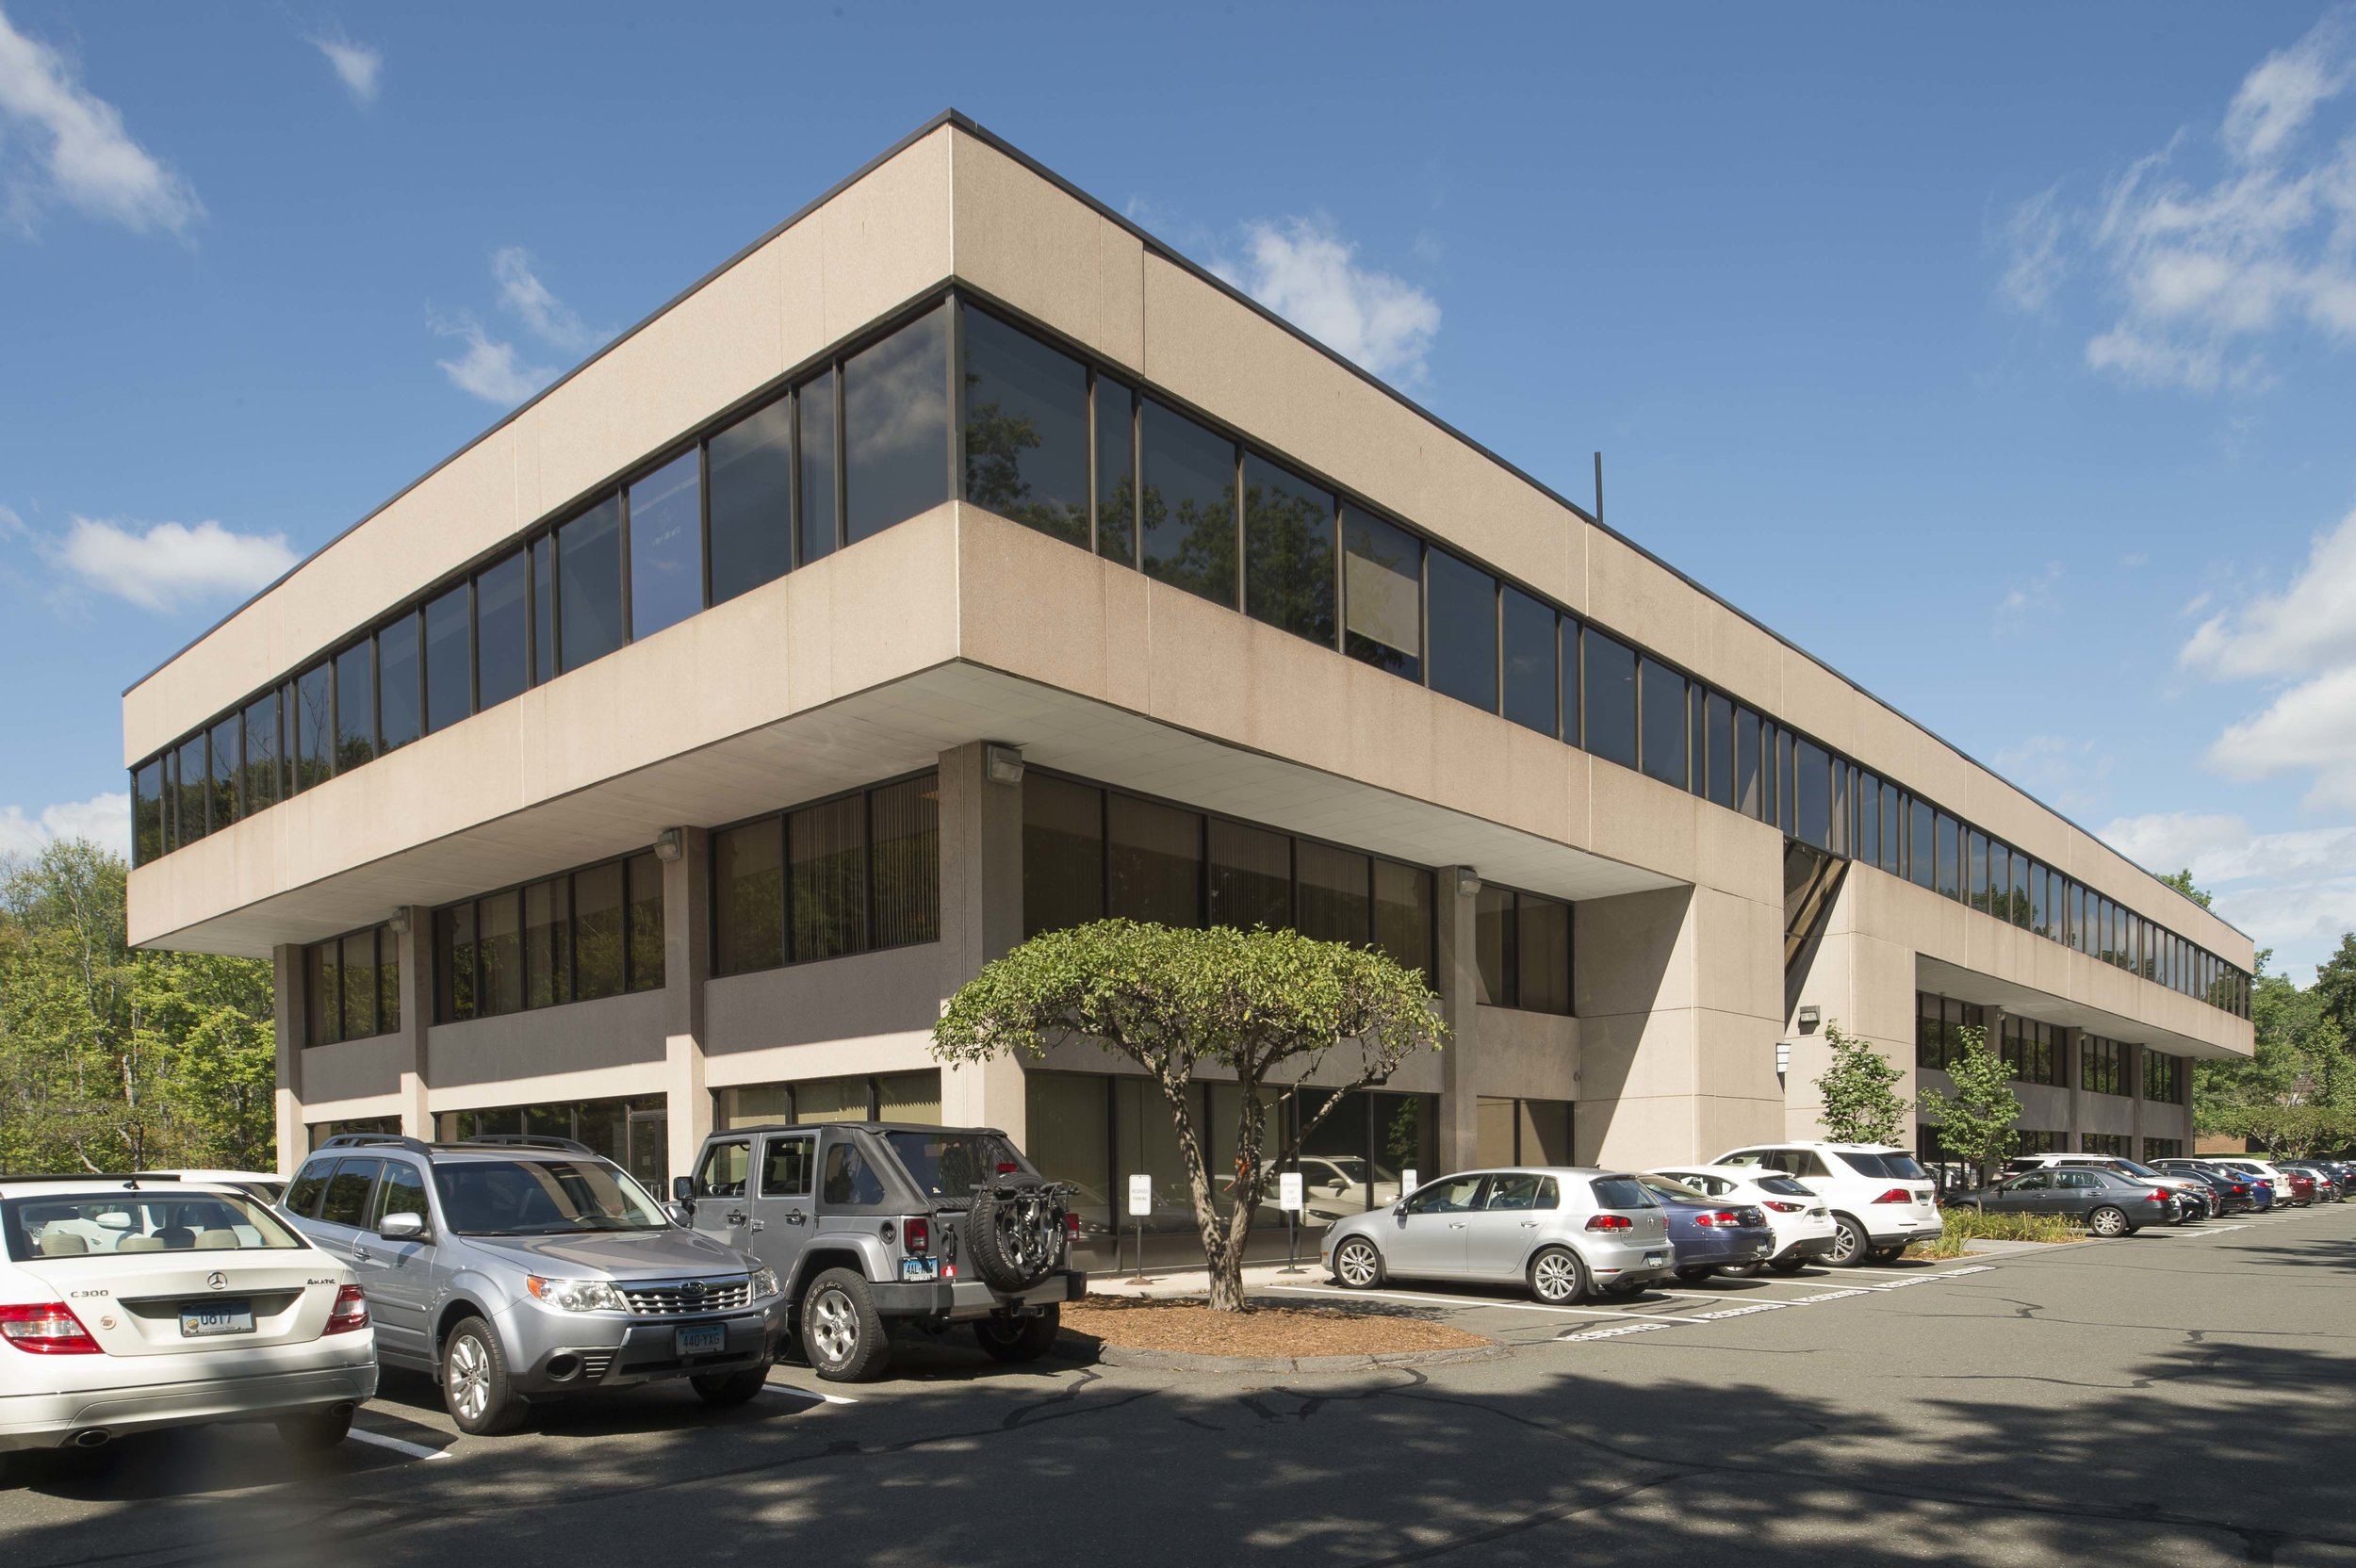 231 Farmington Avenue - The 50,000 Square Foot multi-tenanted office/medical building has convenient access to Route 84 and West Hartford Center...